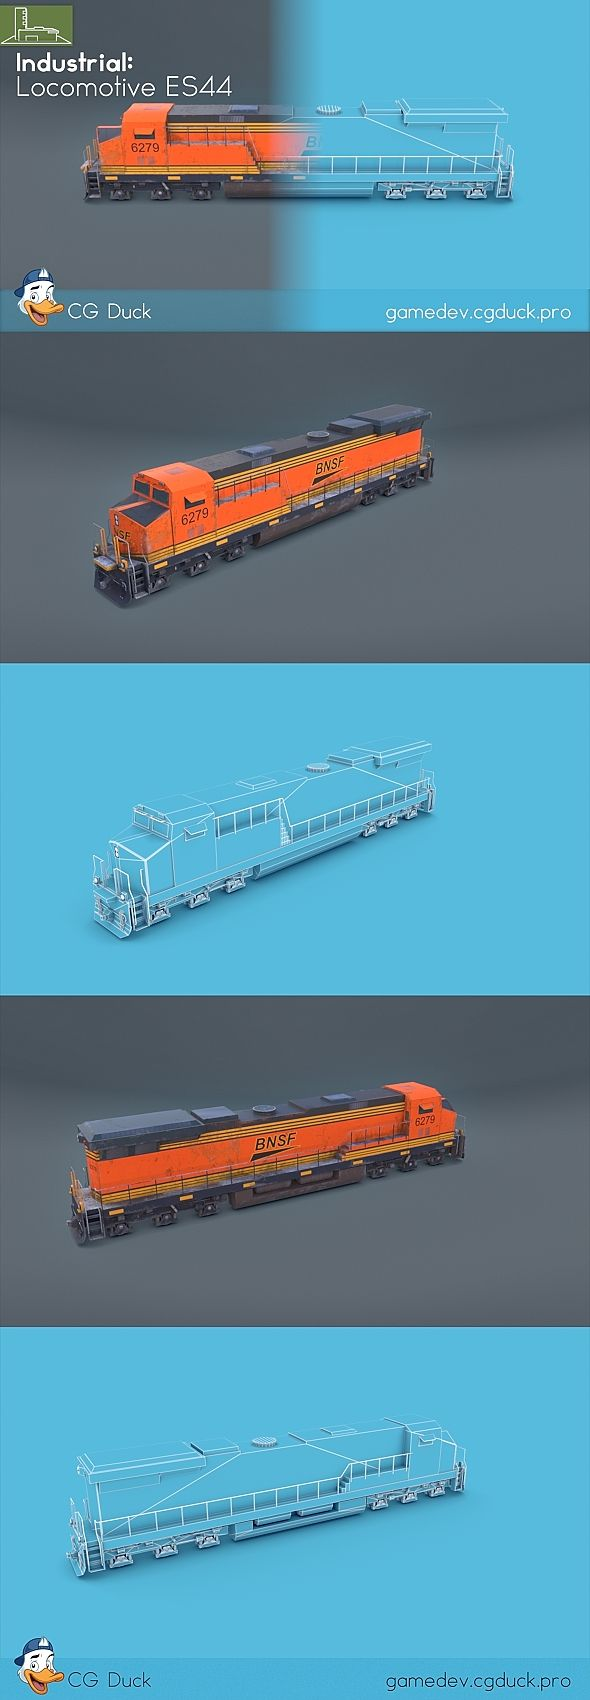 Locomotive ES44 by CGDuck Low poly game-ready 3d model of a